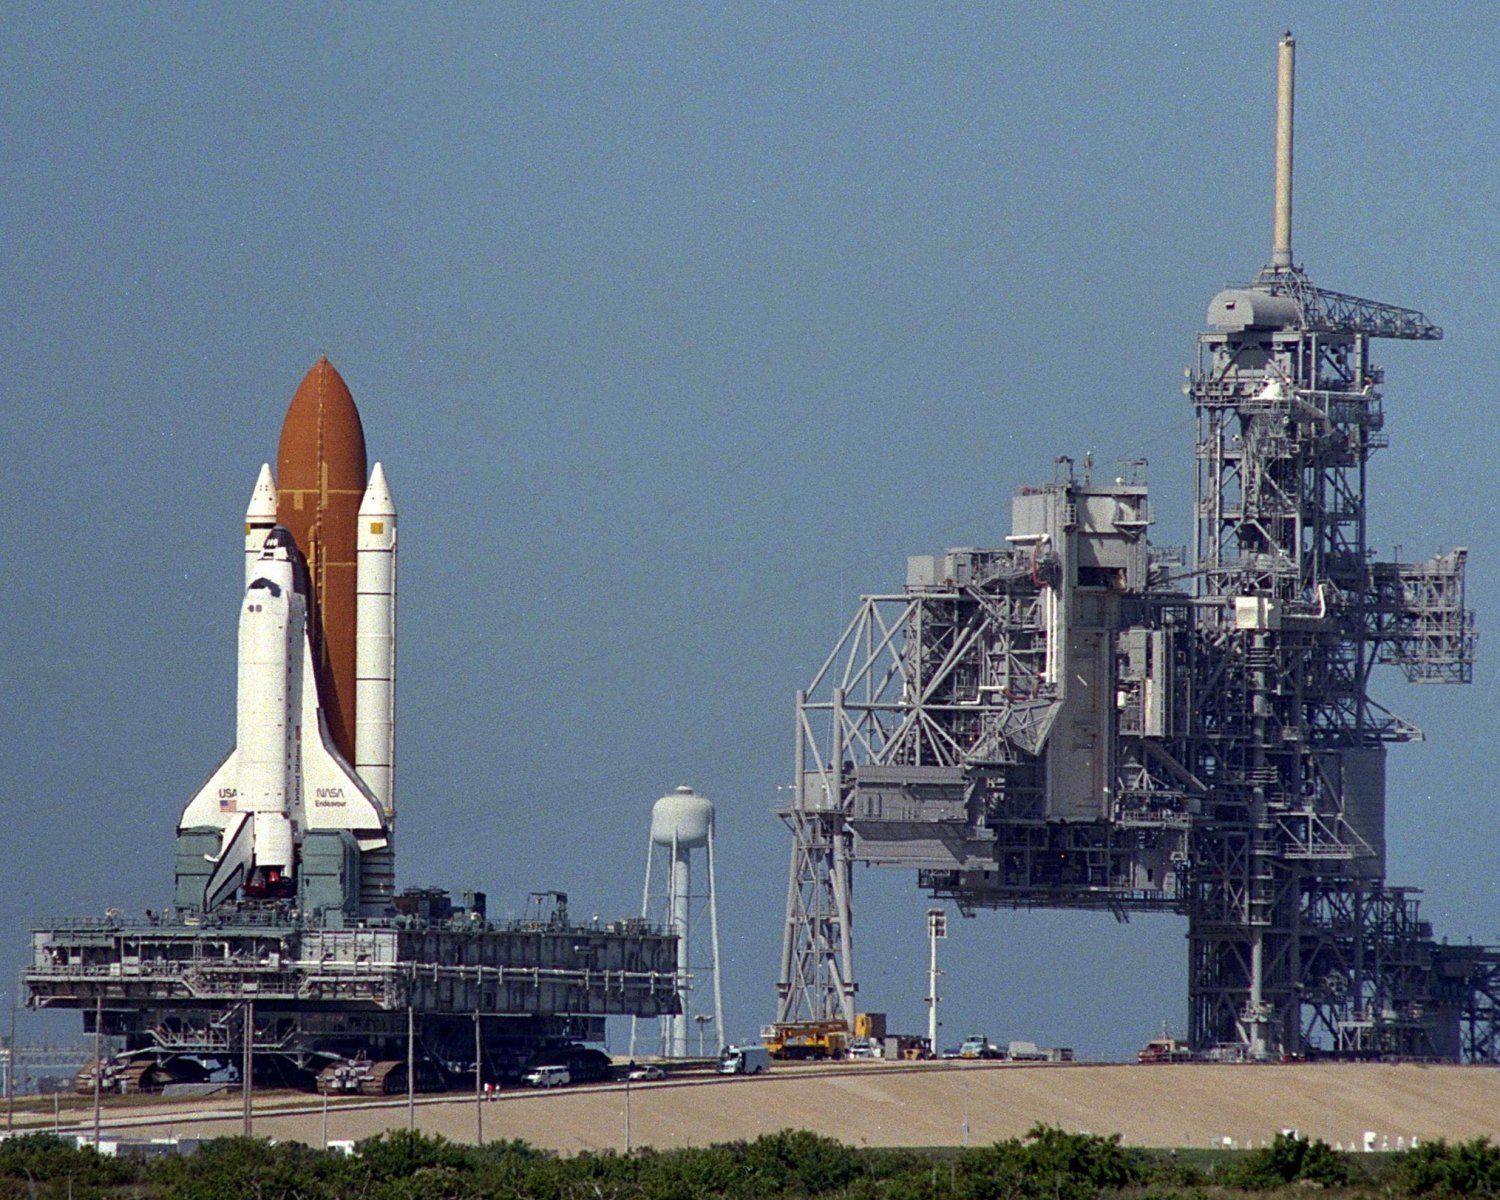 SPACE SHUTTLE ENDEAVOUR ROLLS FROM LAUNCH PAD 39A TO 39B - 8X10 PHOTO (EP-258)